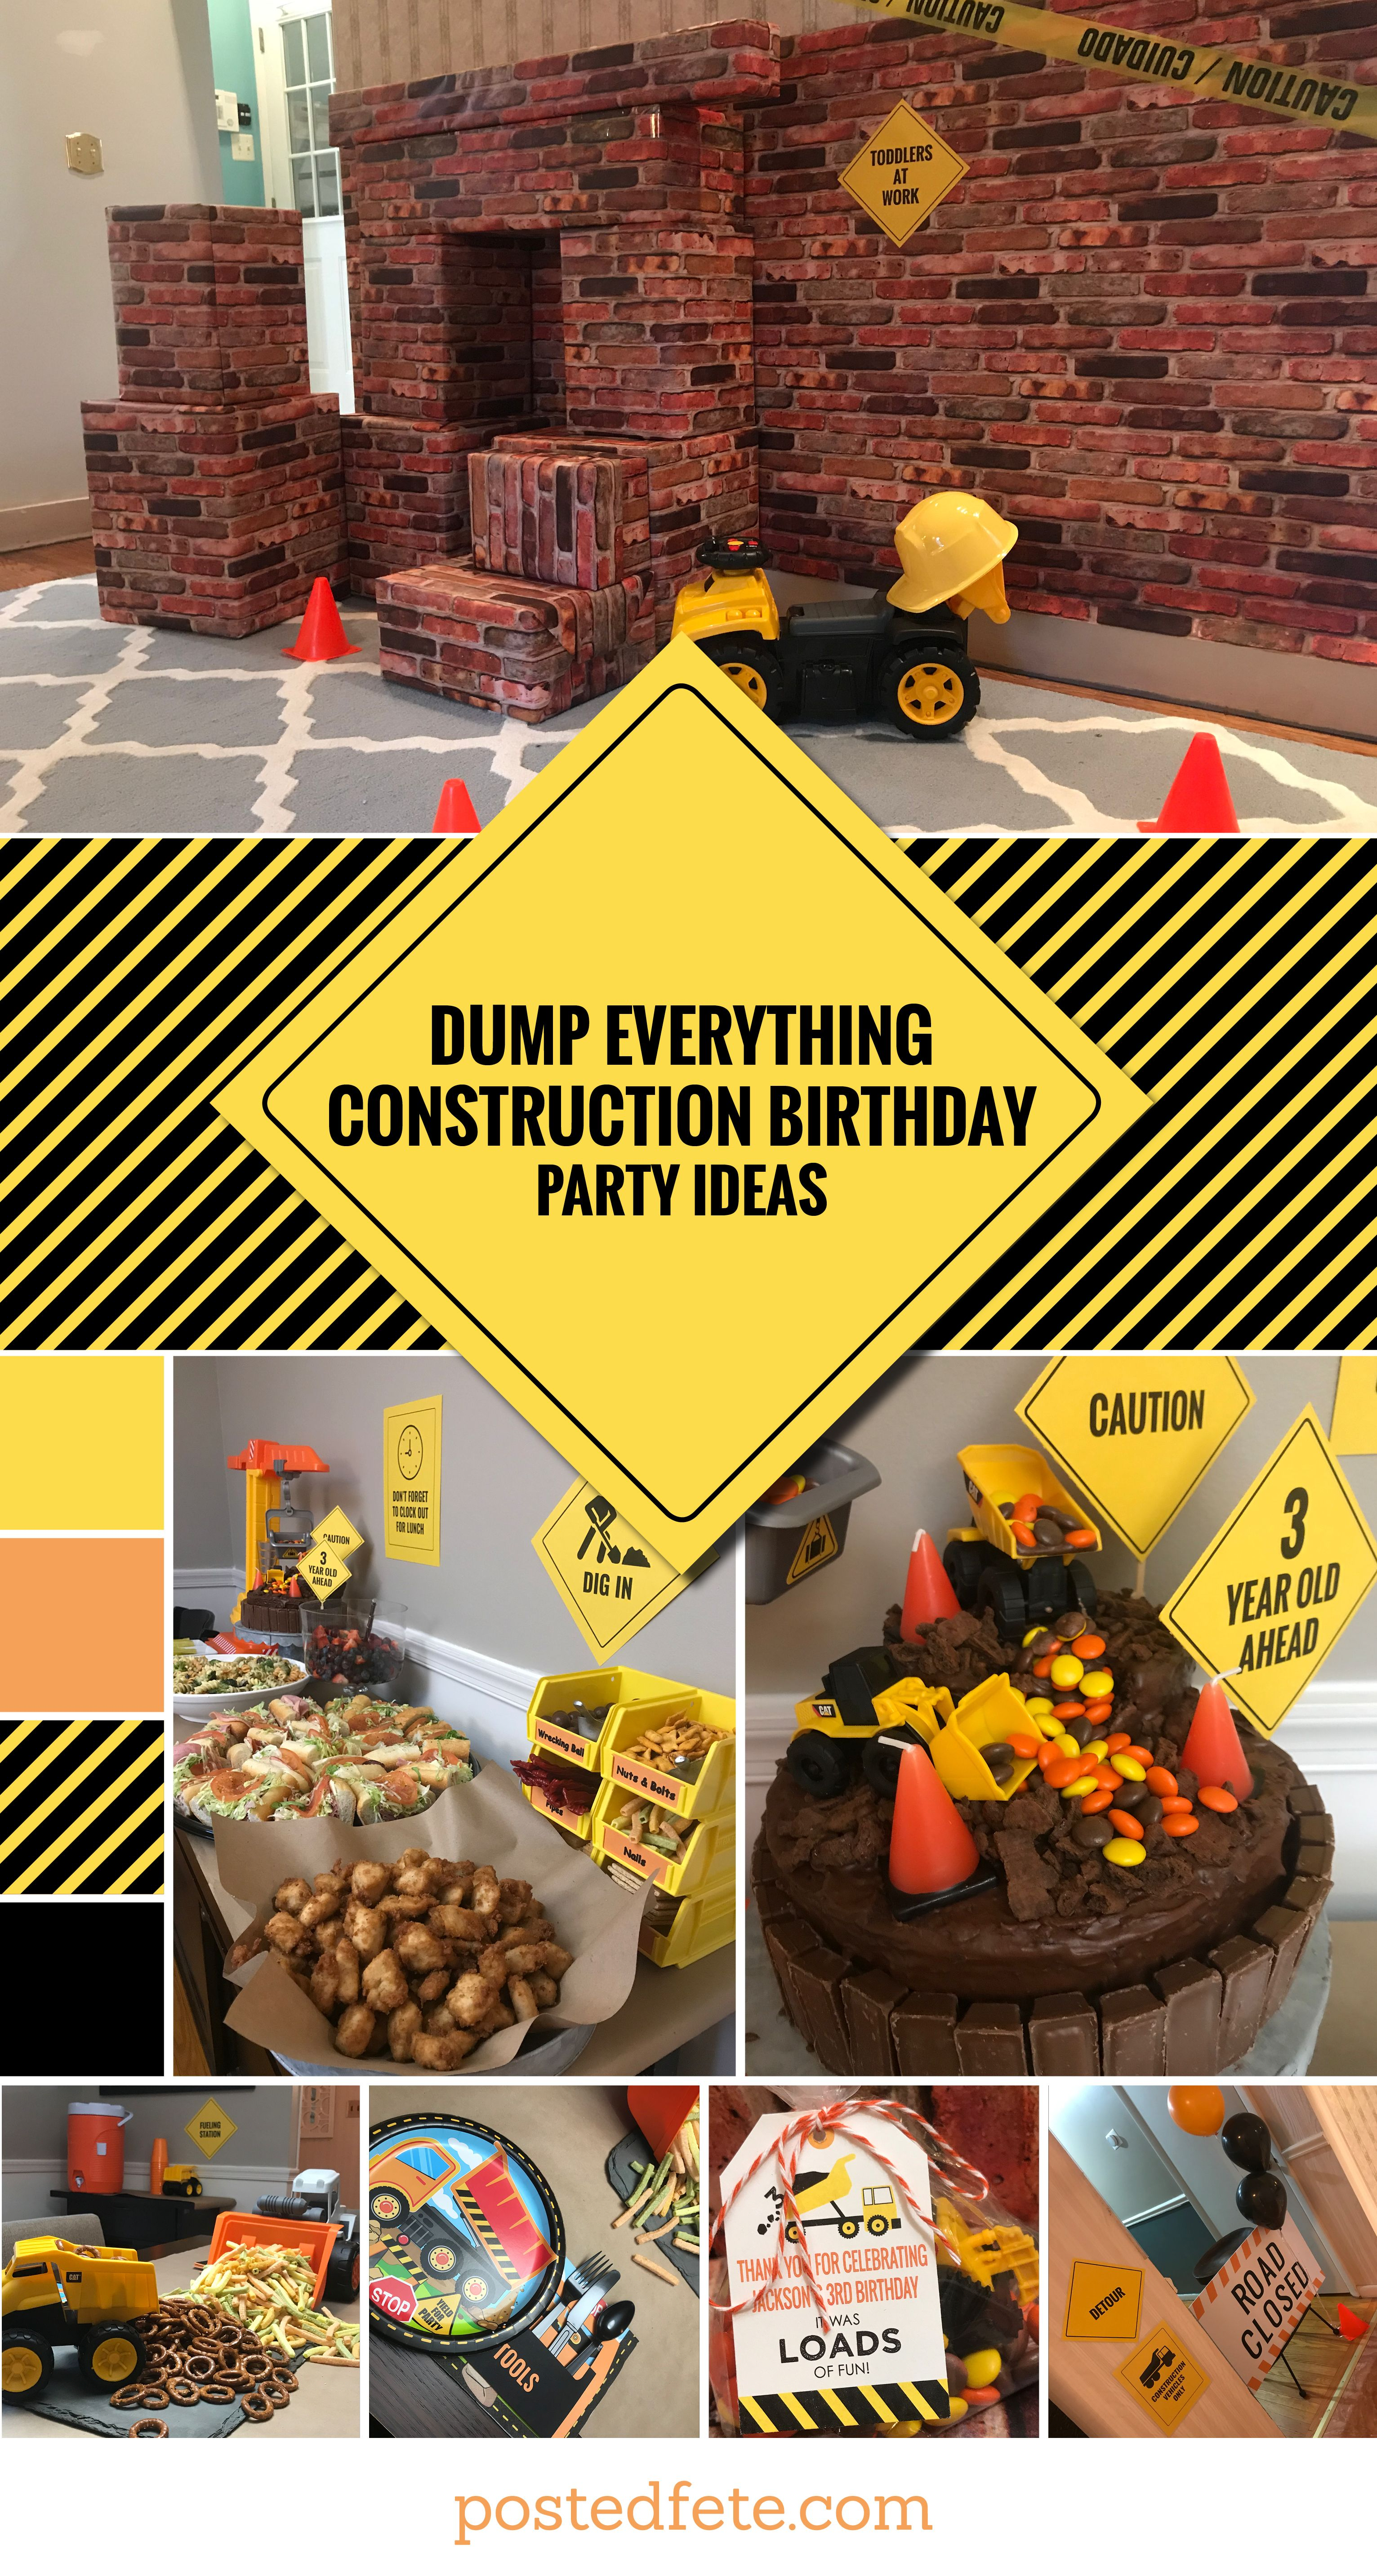 Dump Everything It S Jack S 3rd Birthday Posted Fete Construction Birthday Parties Construction Birthday Diy Birthday Party